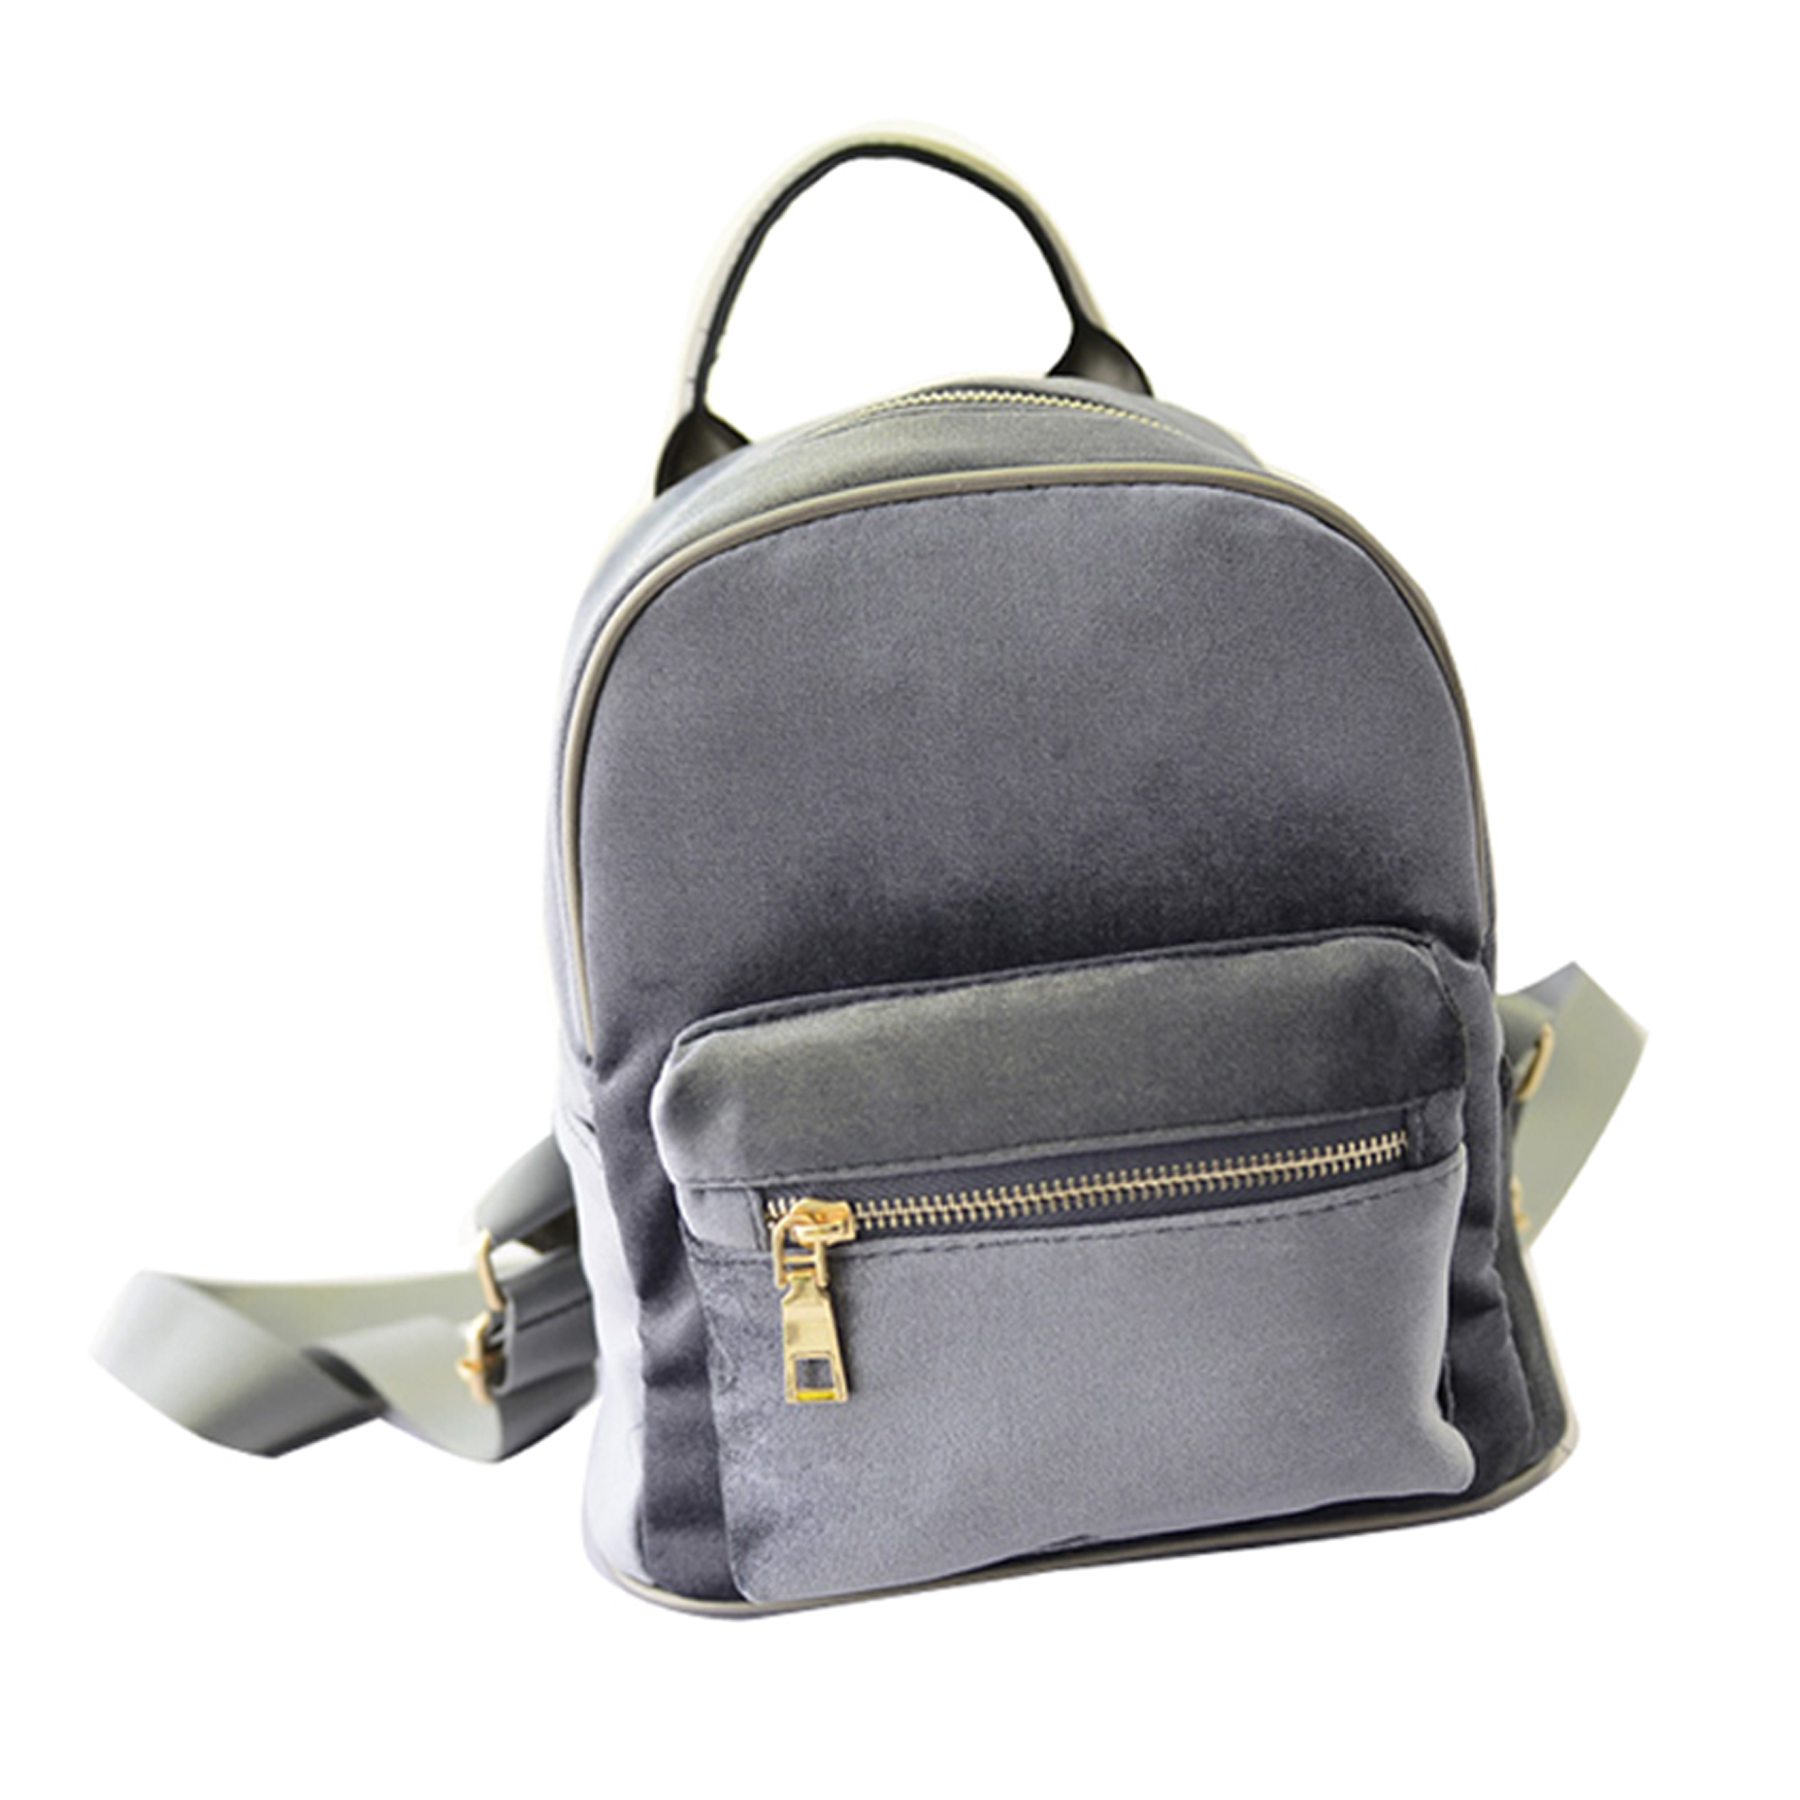 Women Small Backpack Student Fishion Mini Velvet Zipper bag High Quality Casual Small light Girl School bag Simple Style 4 pieces set of summer women canvas backpack girl student lace book bag with high quality backpack child juvenile bag